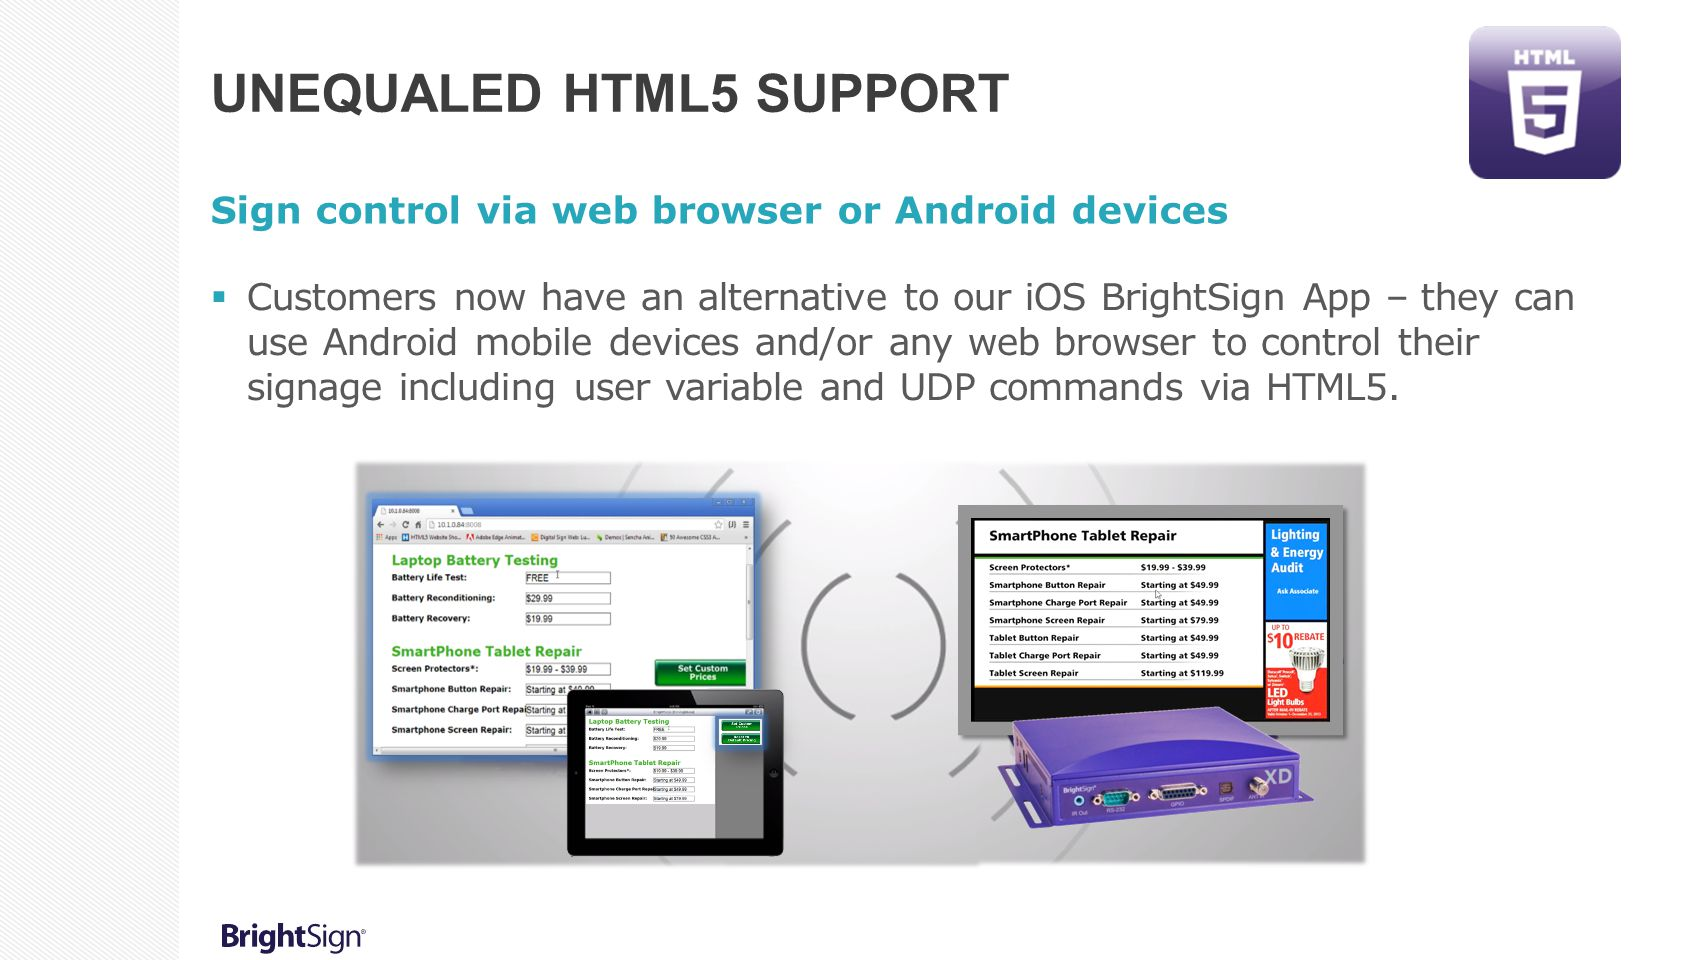 Unequaled HTML5 Support